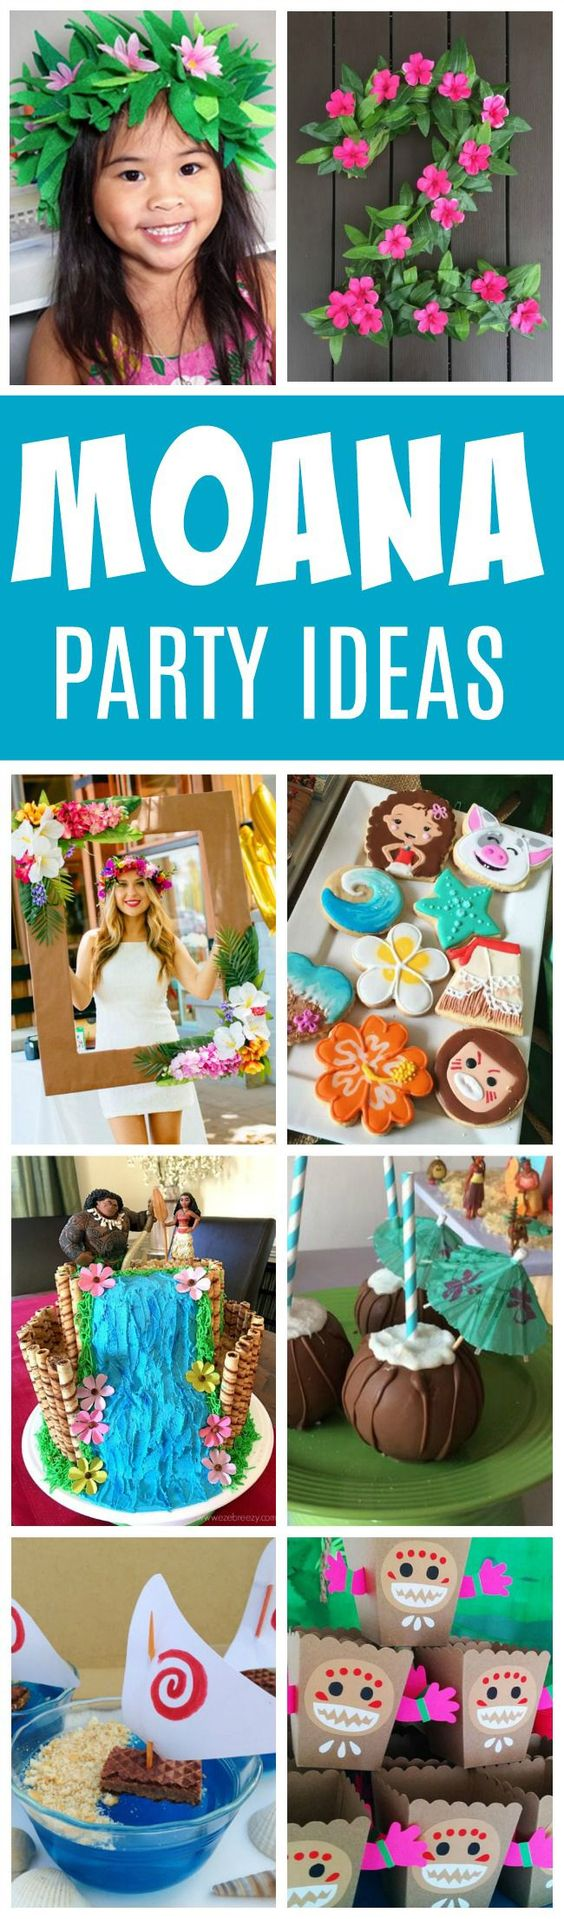 27 Disney Moana Birthday Party Ideas